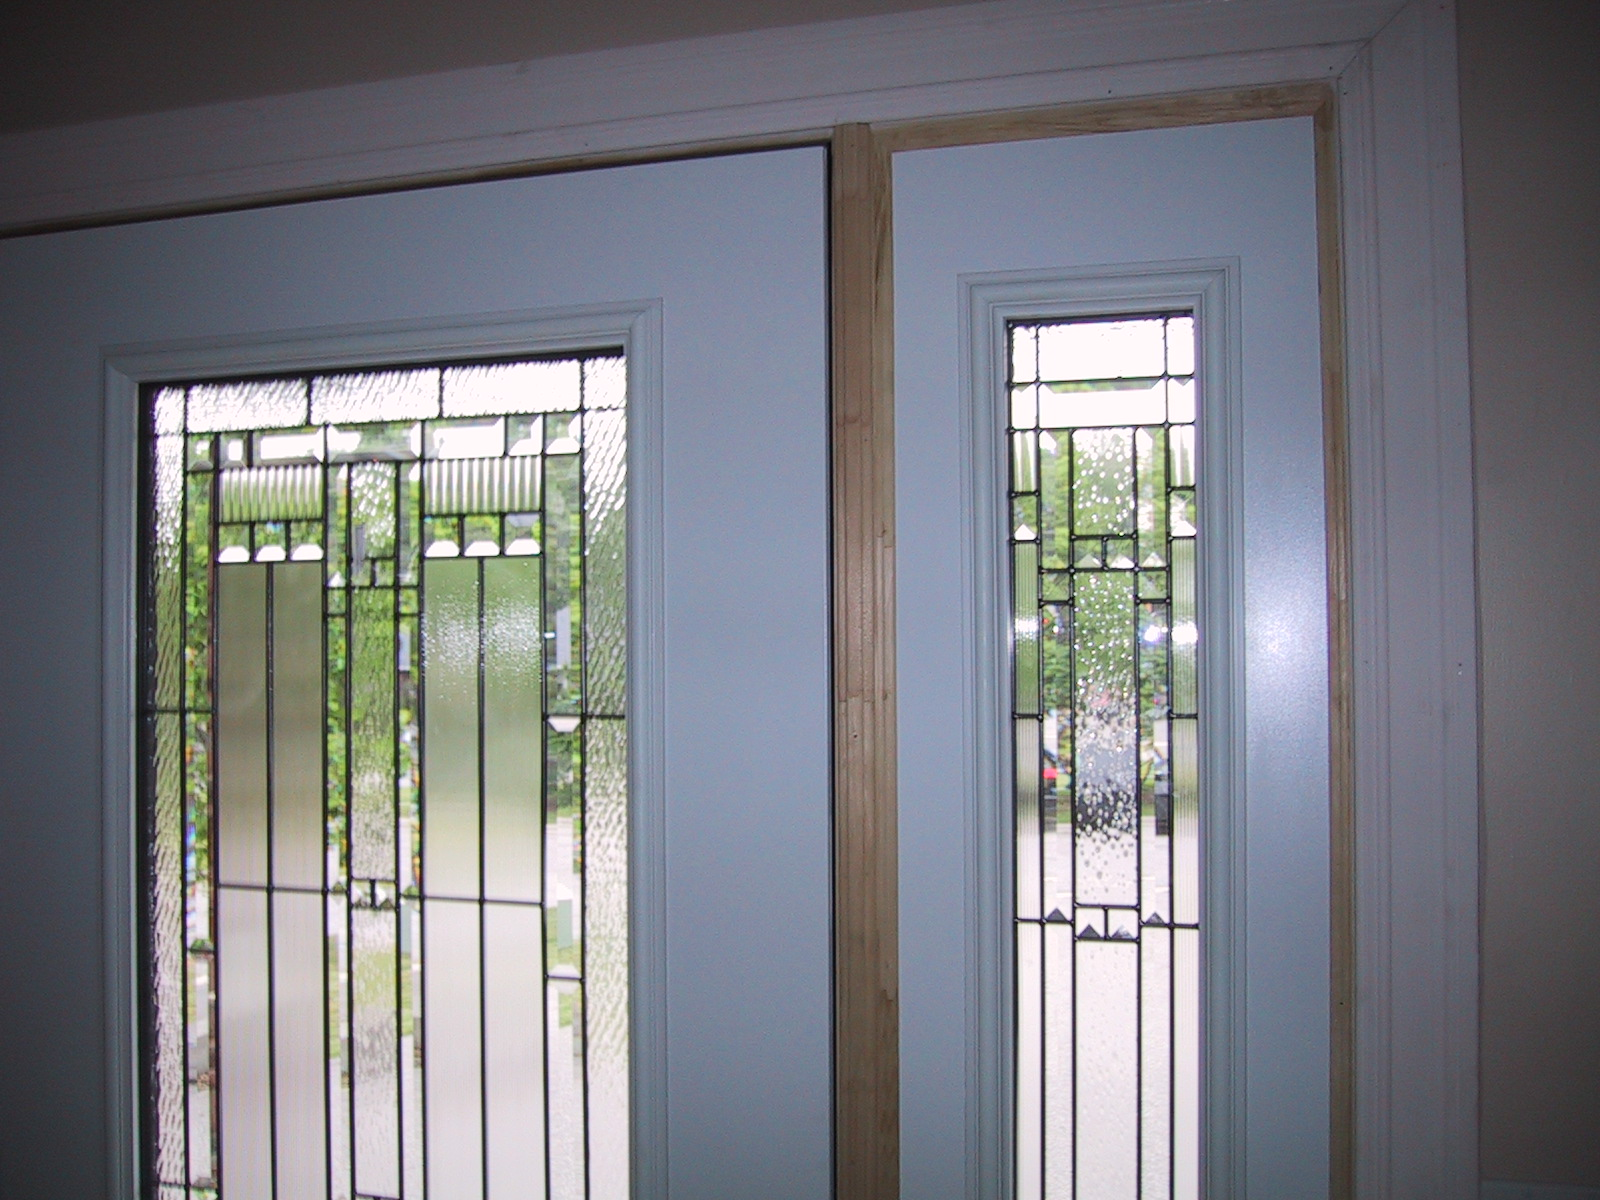 Glass Entry Doors Glass Entry Doors Ideas Built With Polymer Design